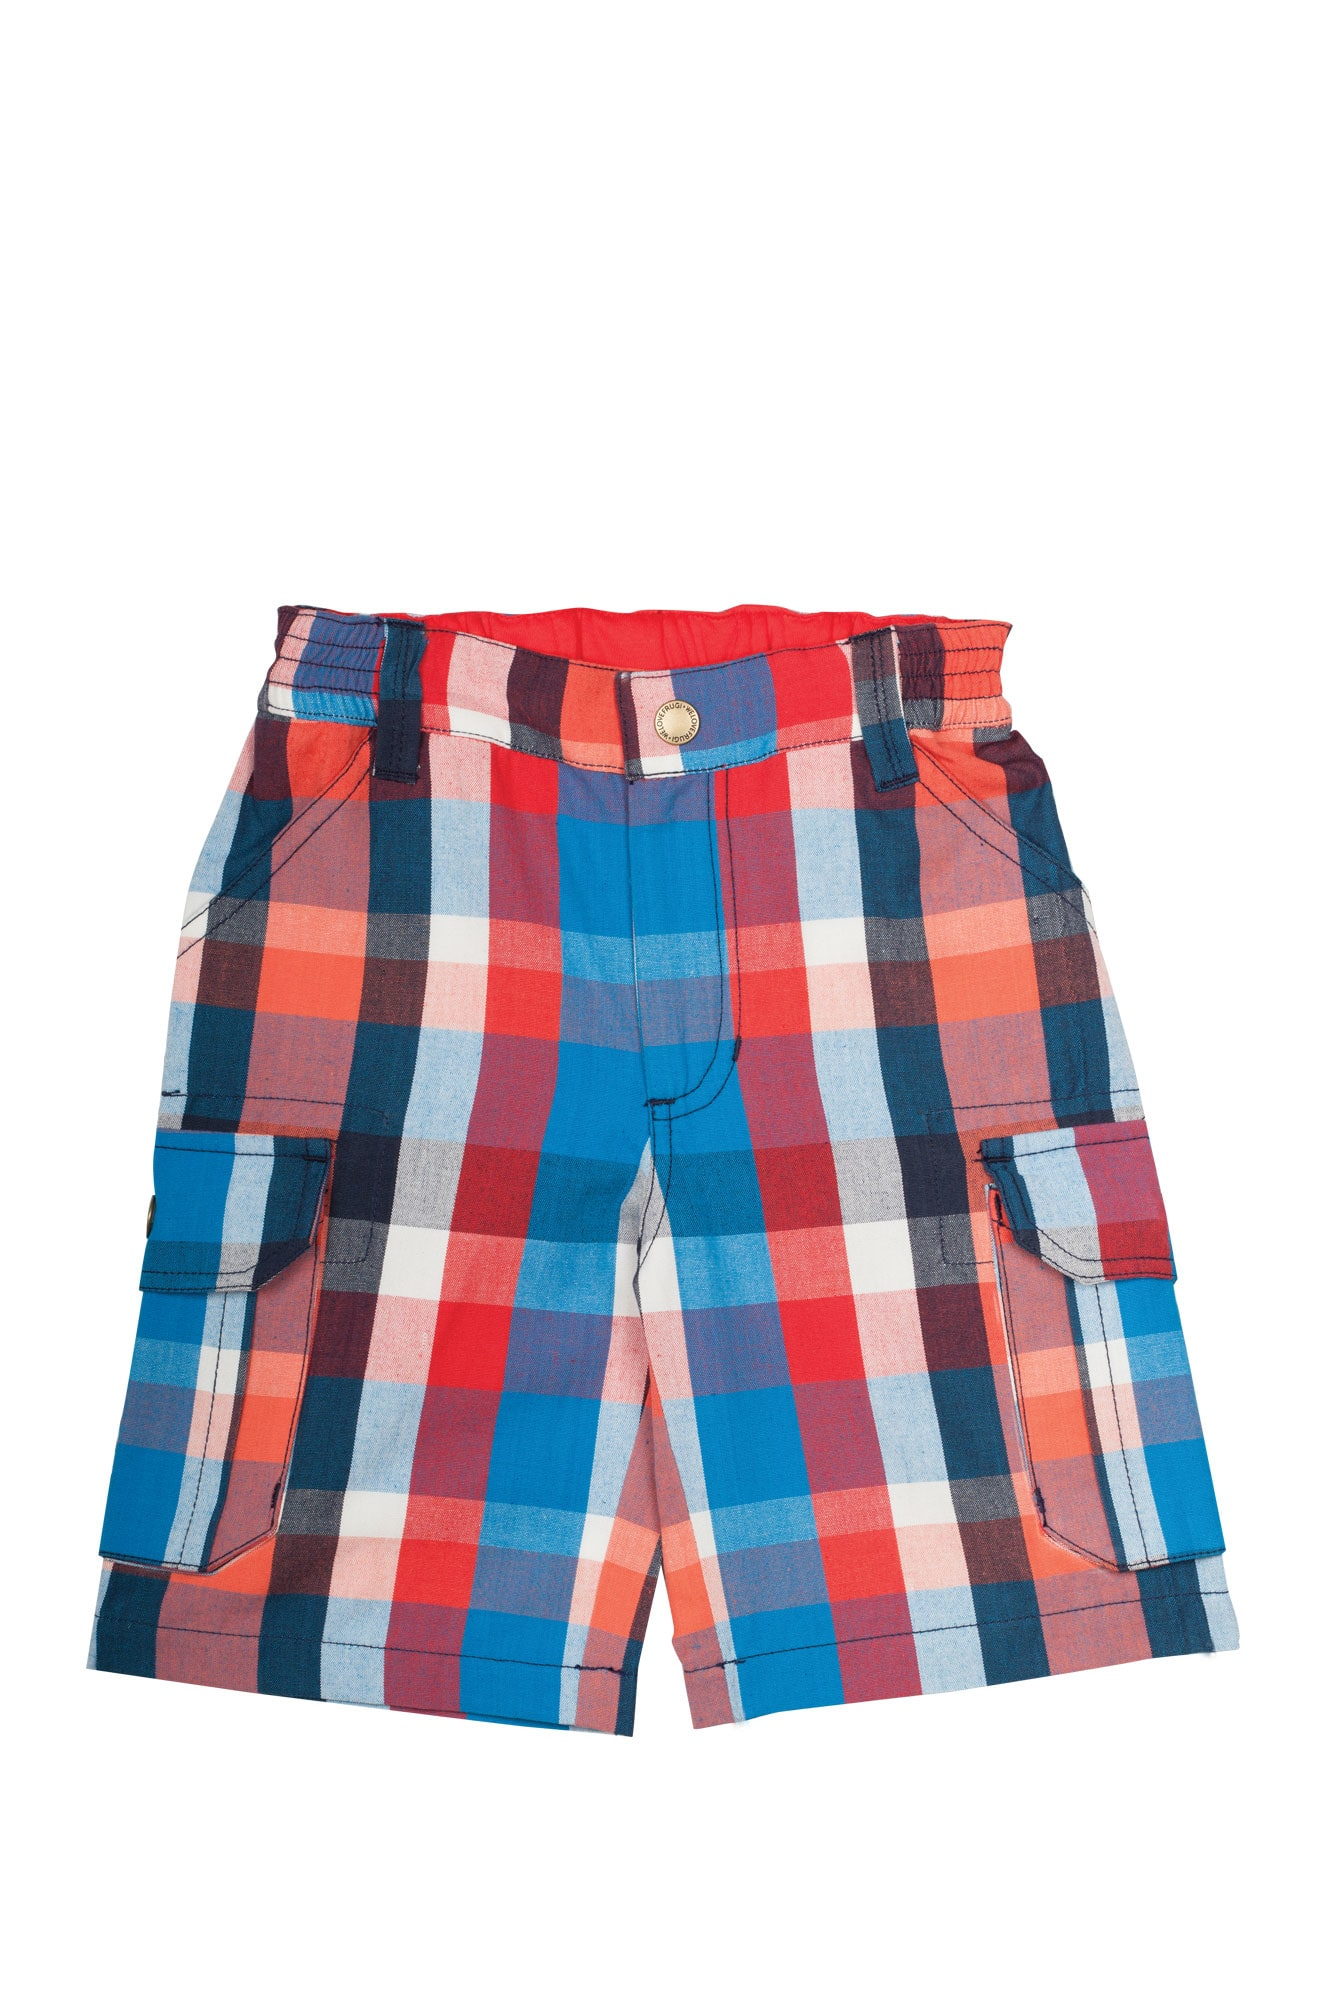 Stockists of Check Shorts